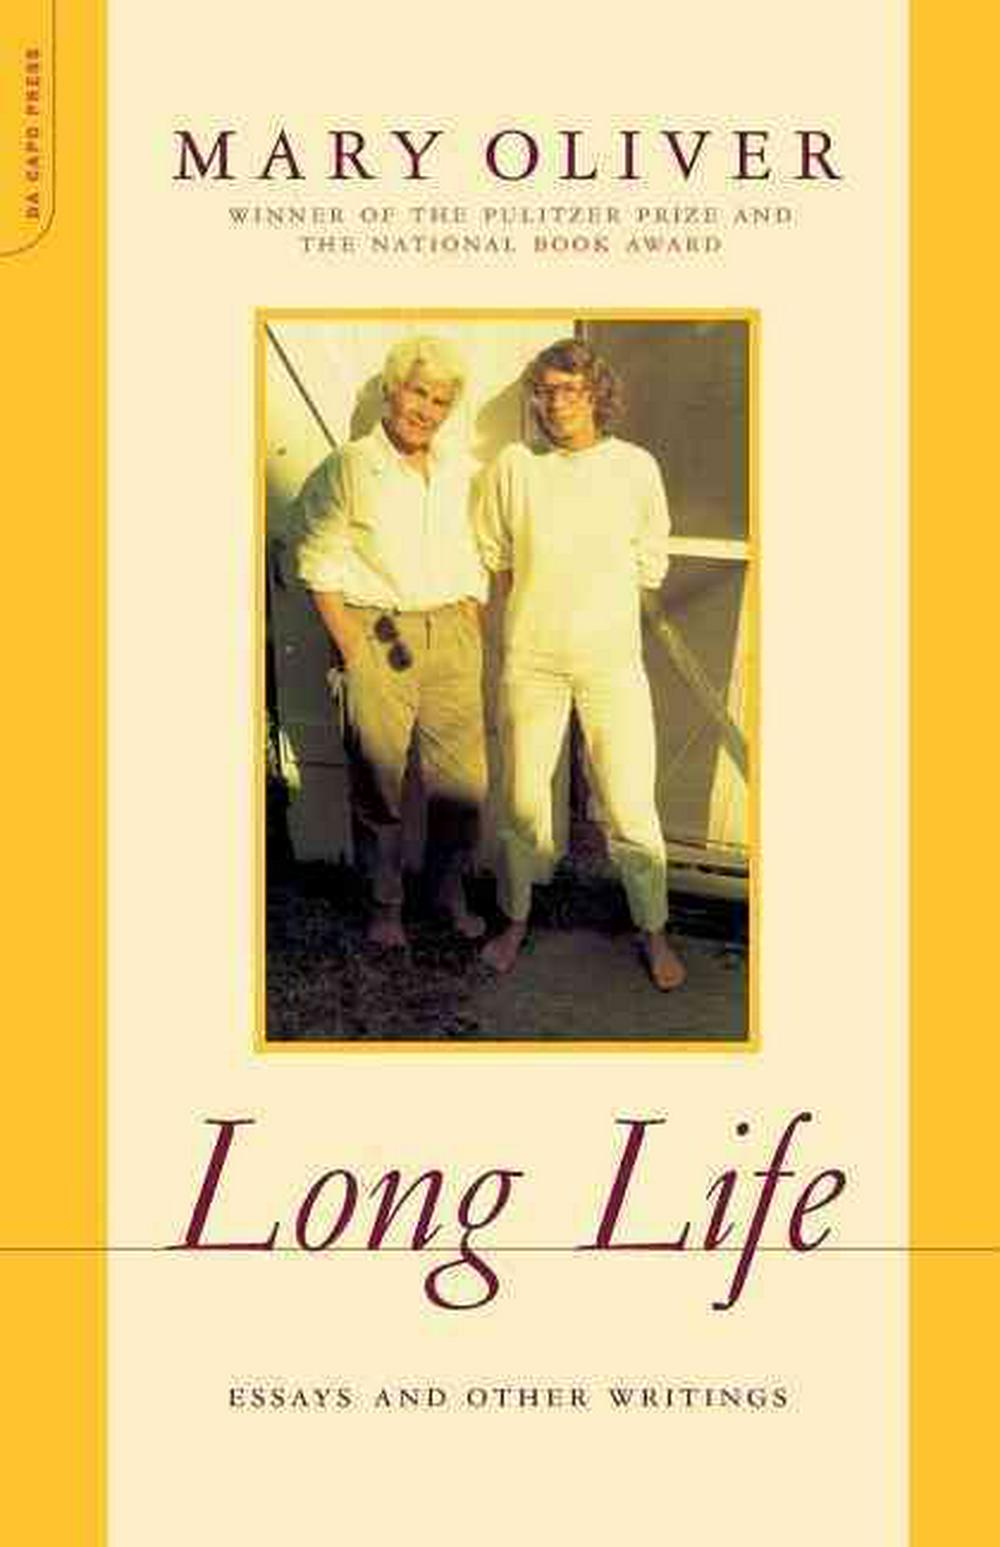 Long Life: Essays and Other Writings